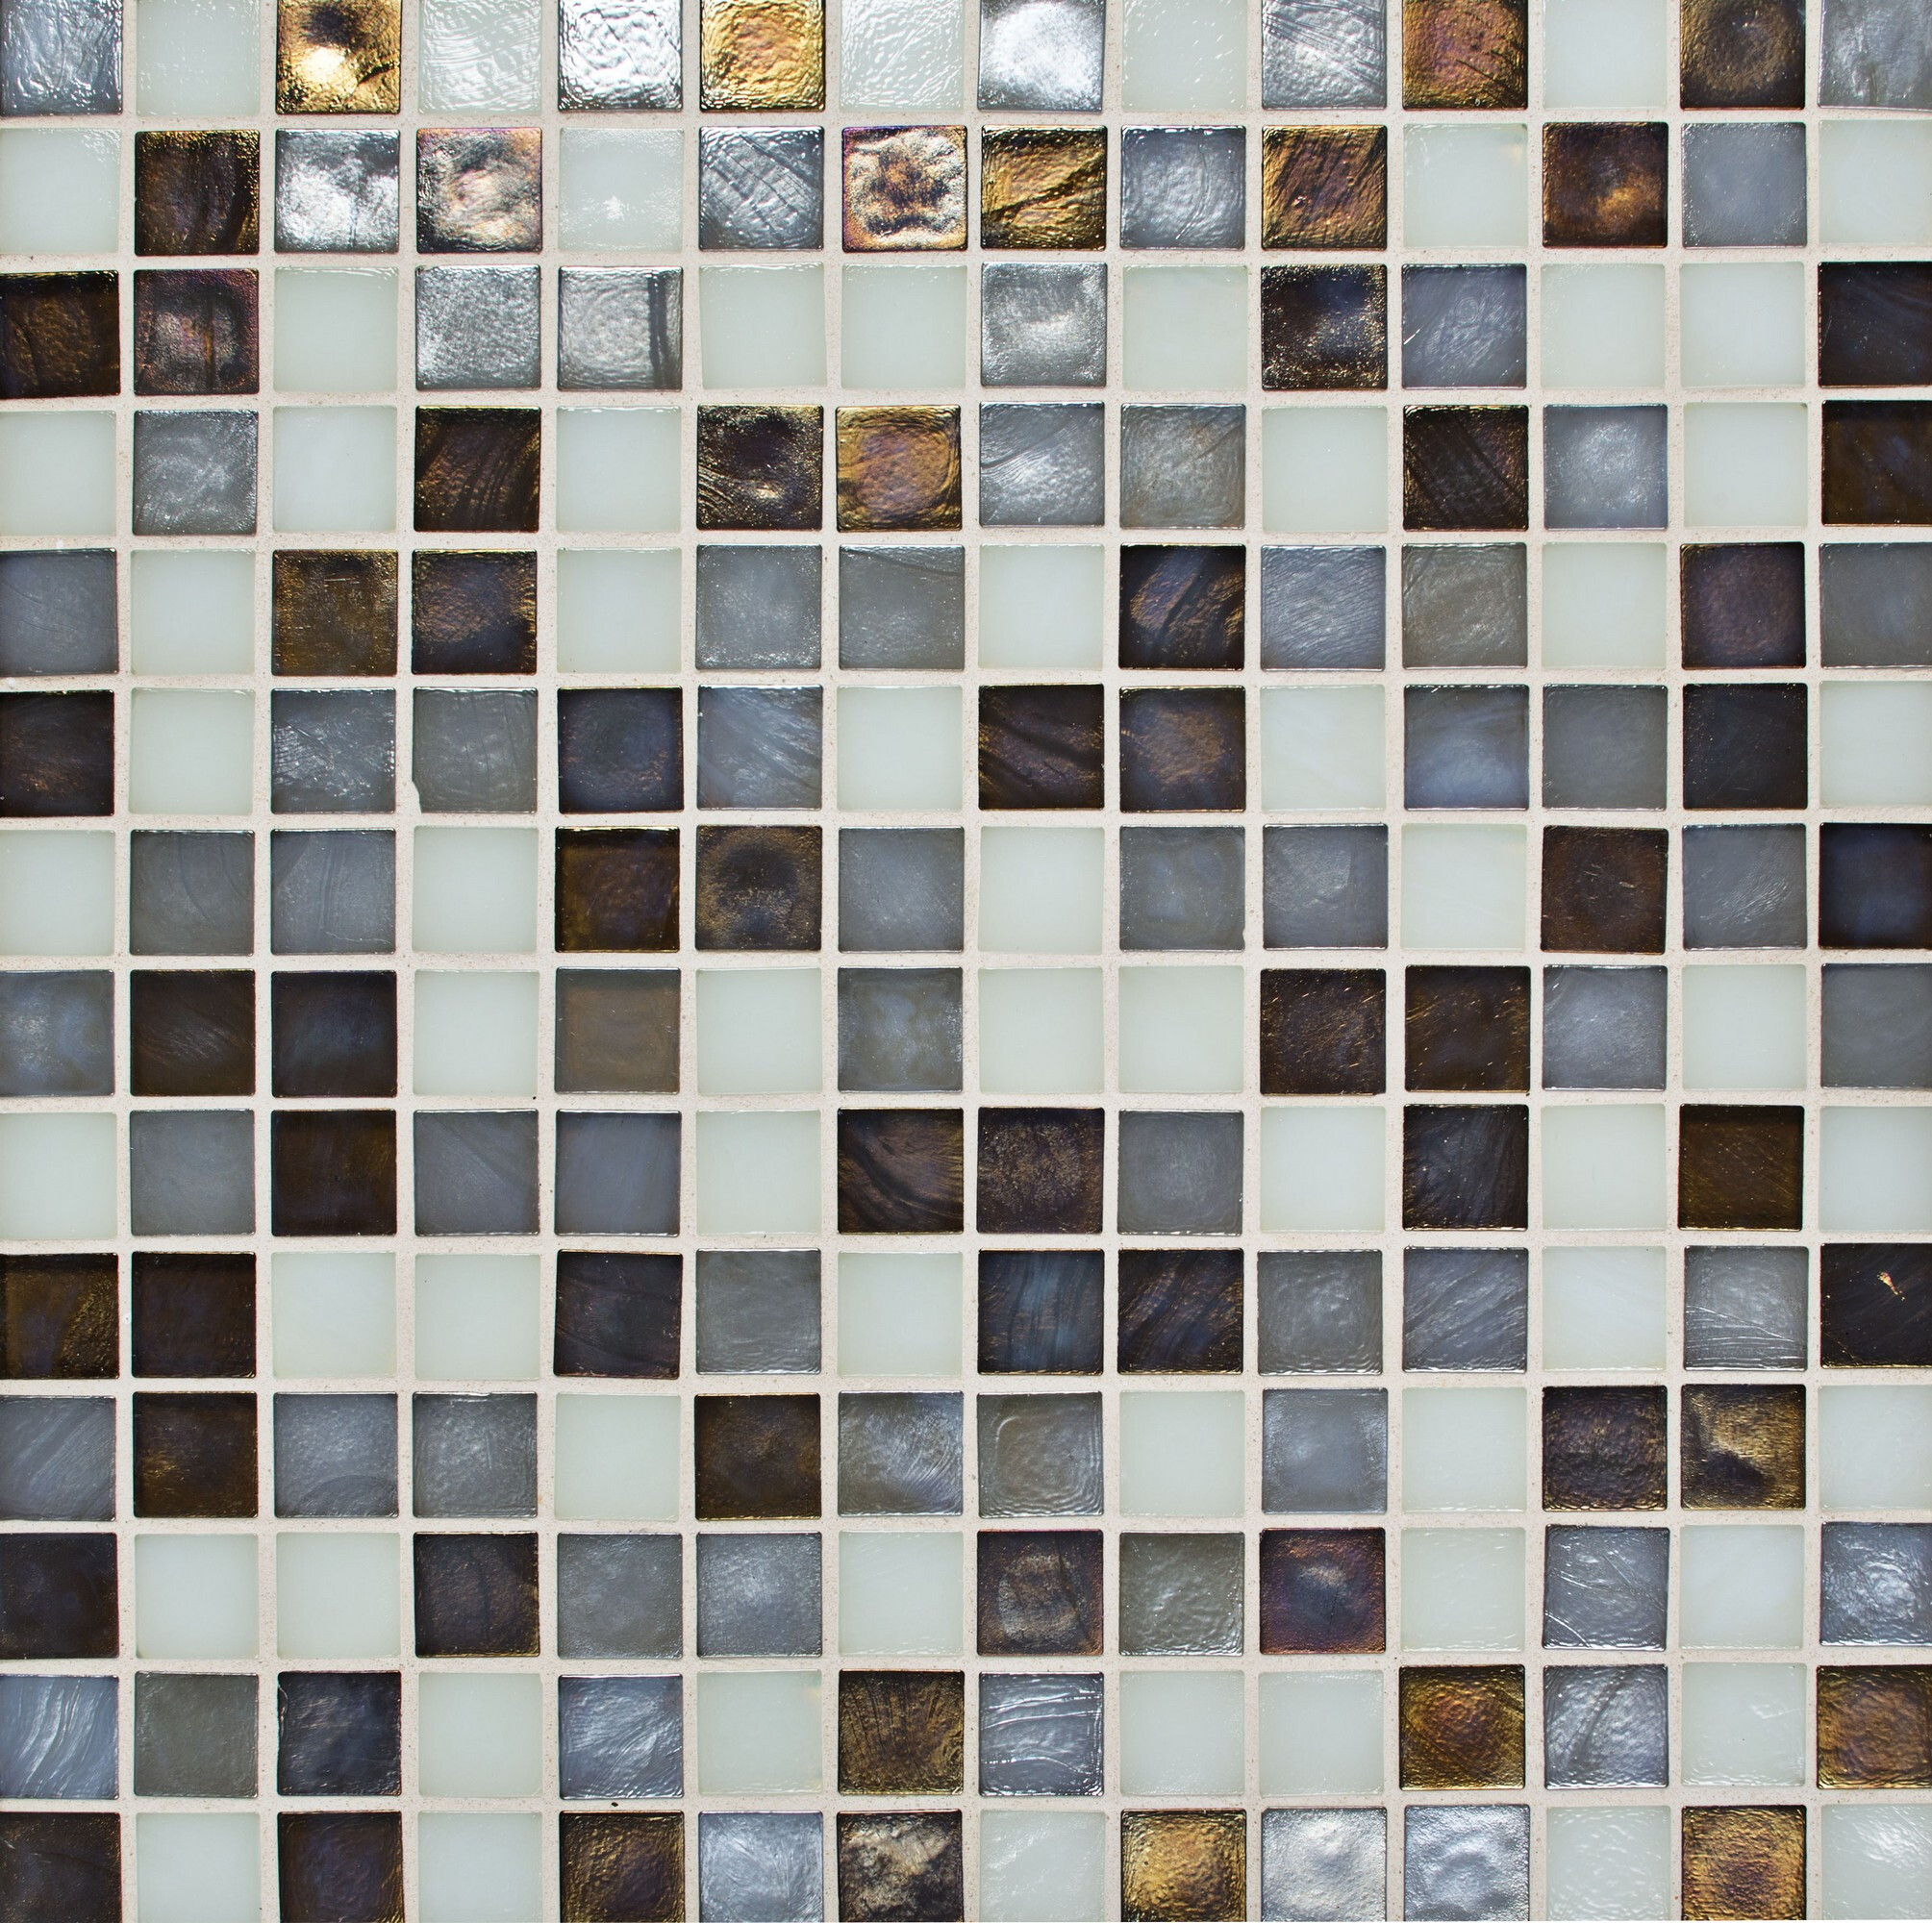 Blue Collection Sustainable Tiles By Oceanside Glasstile Media Photos And Videos 9 Archello